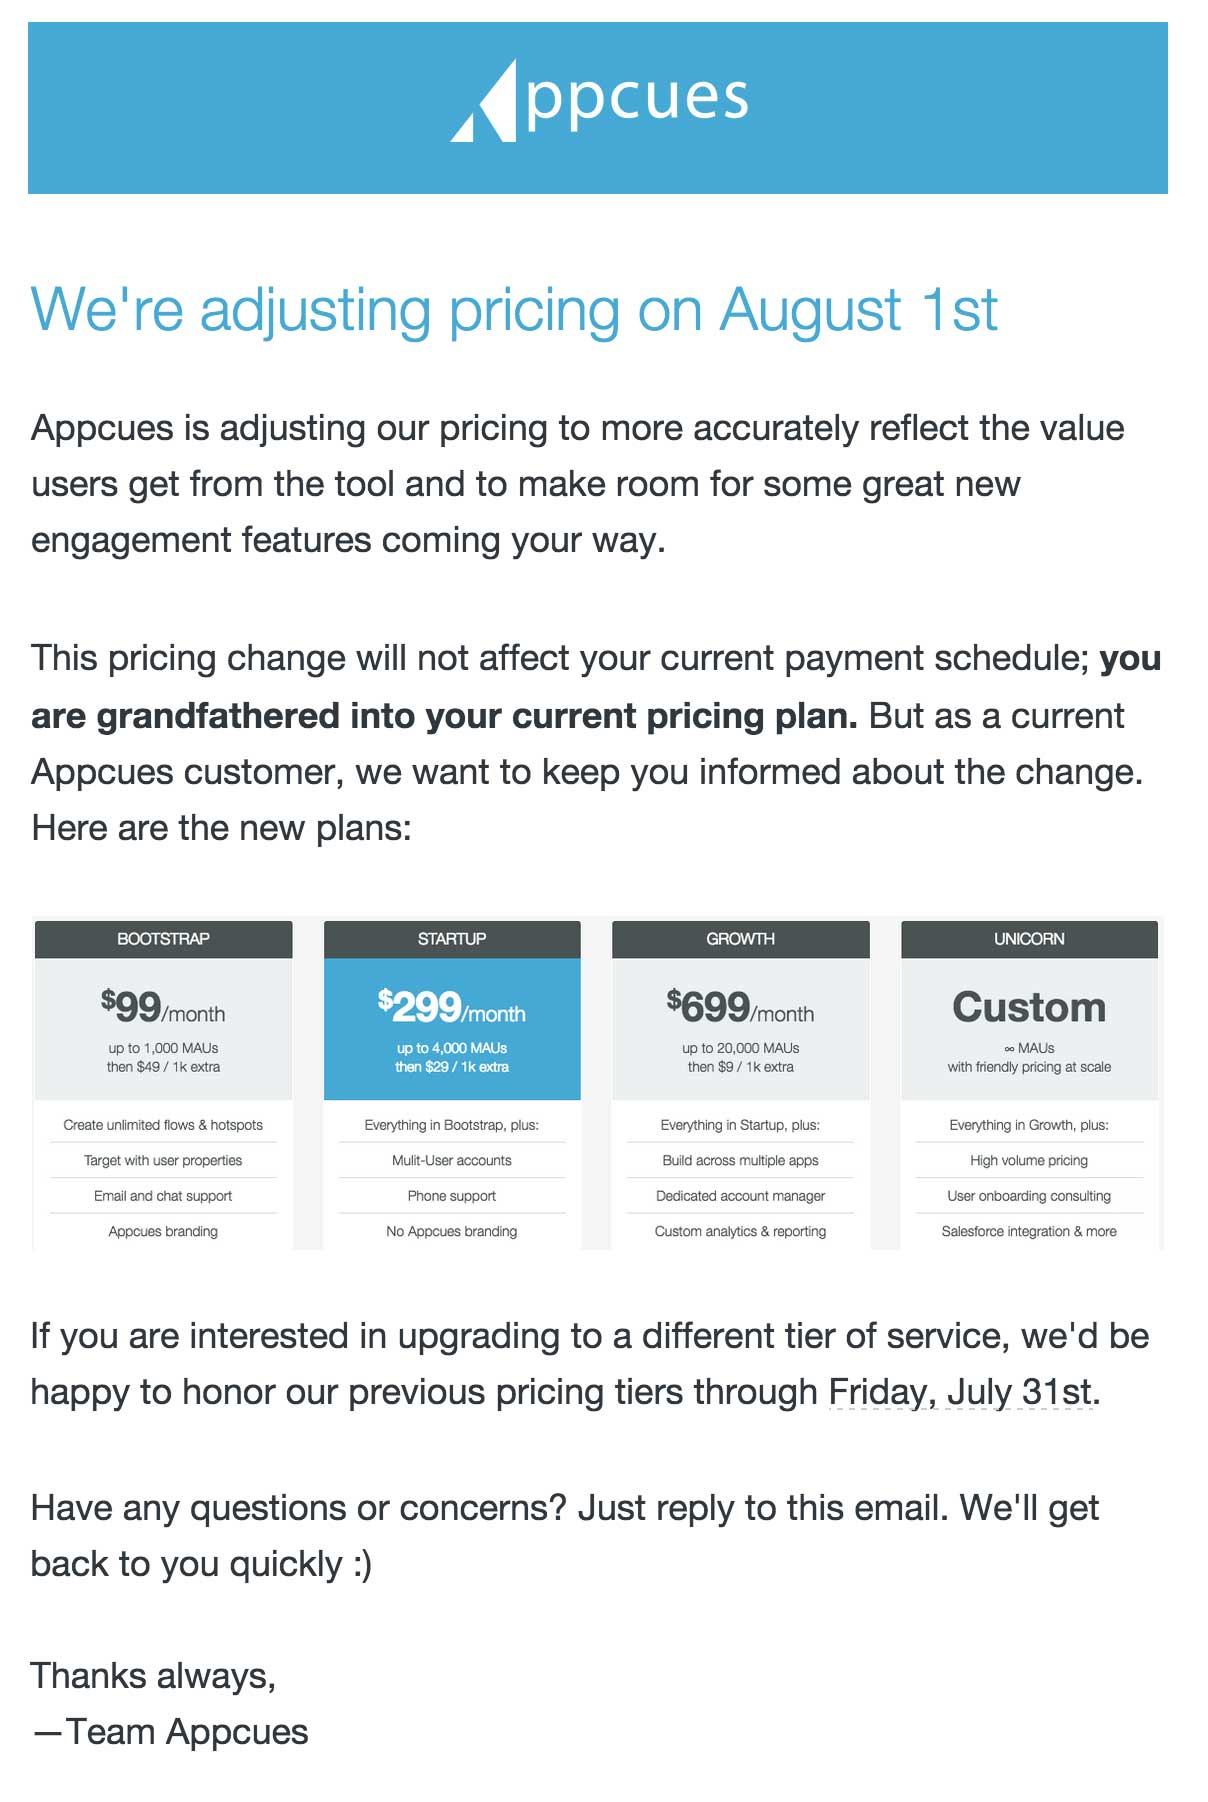 Price increase email to customers